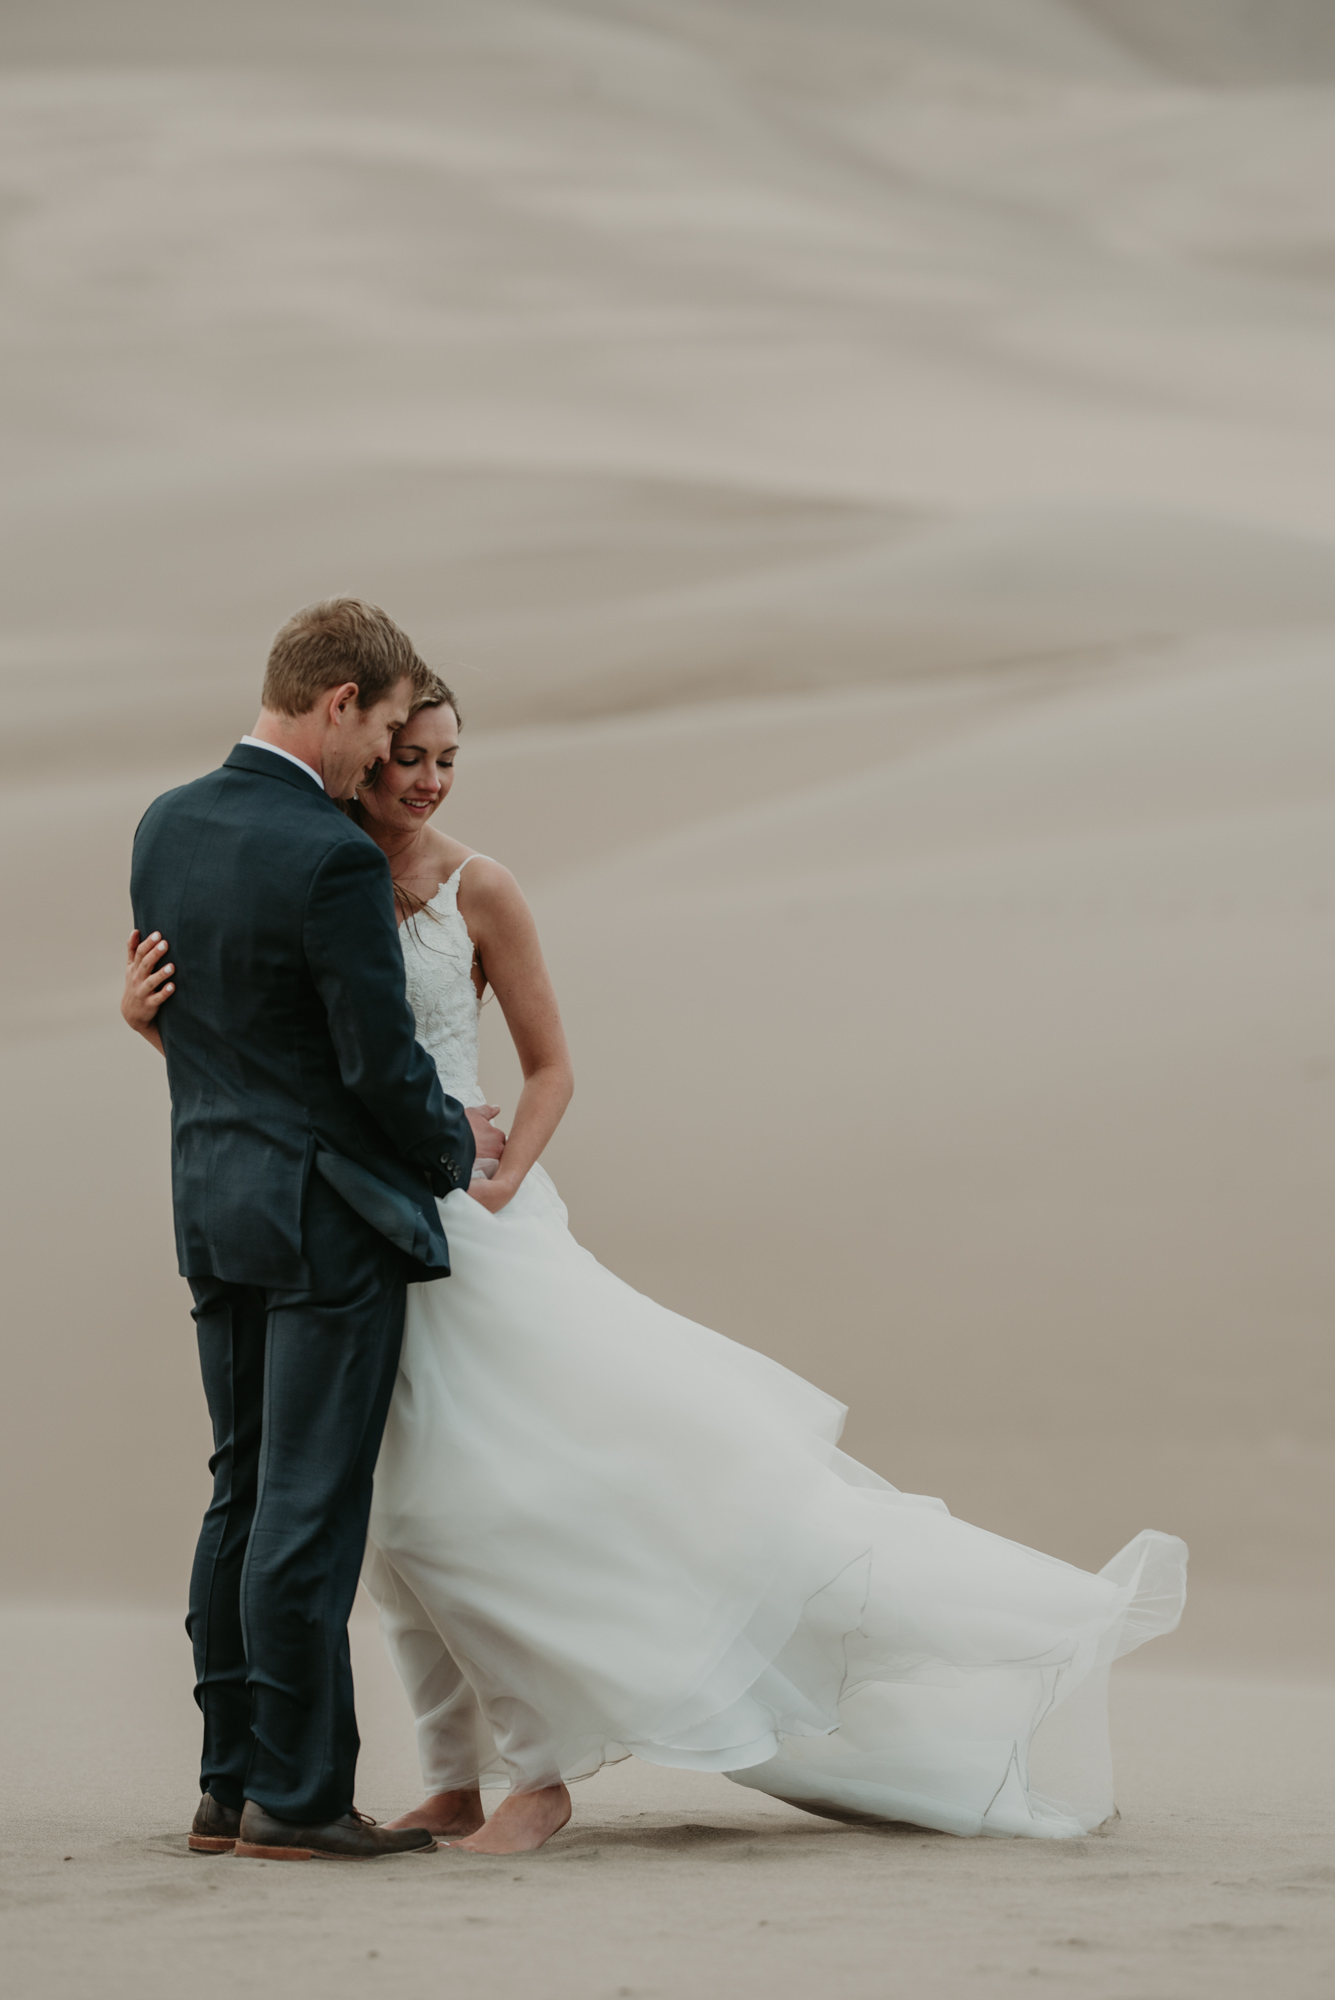 National Parks are the perfect place to celebrate your big day.